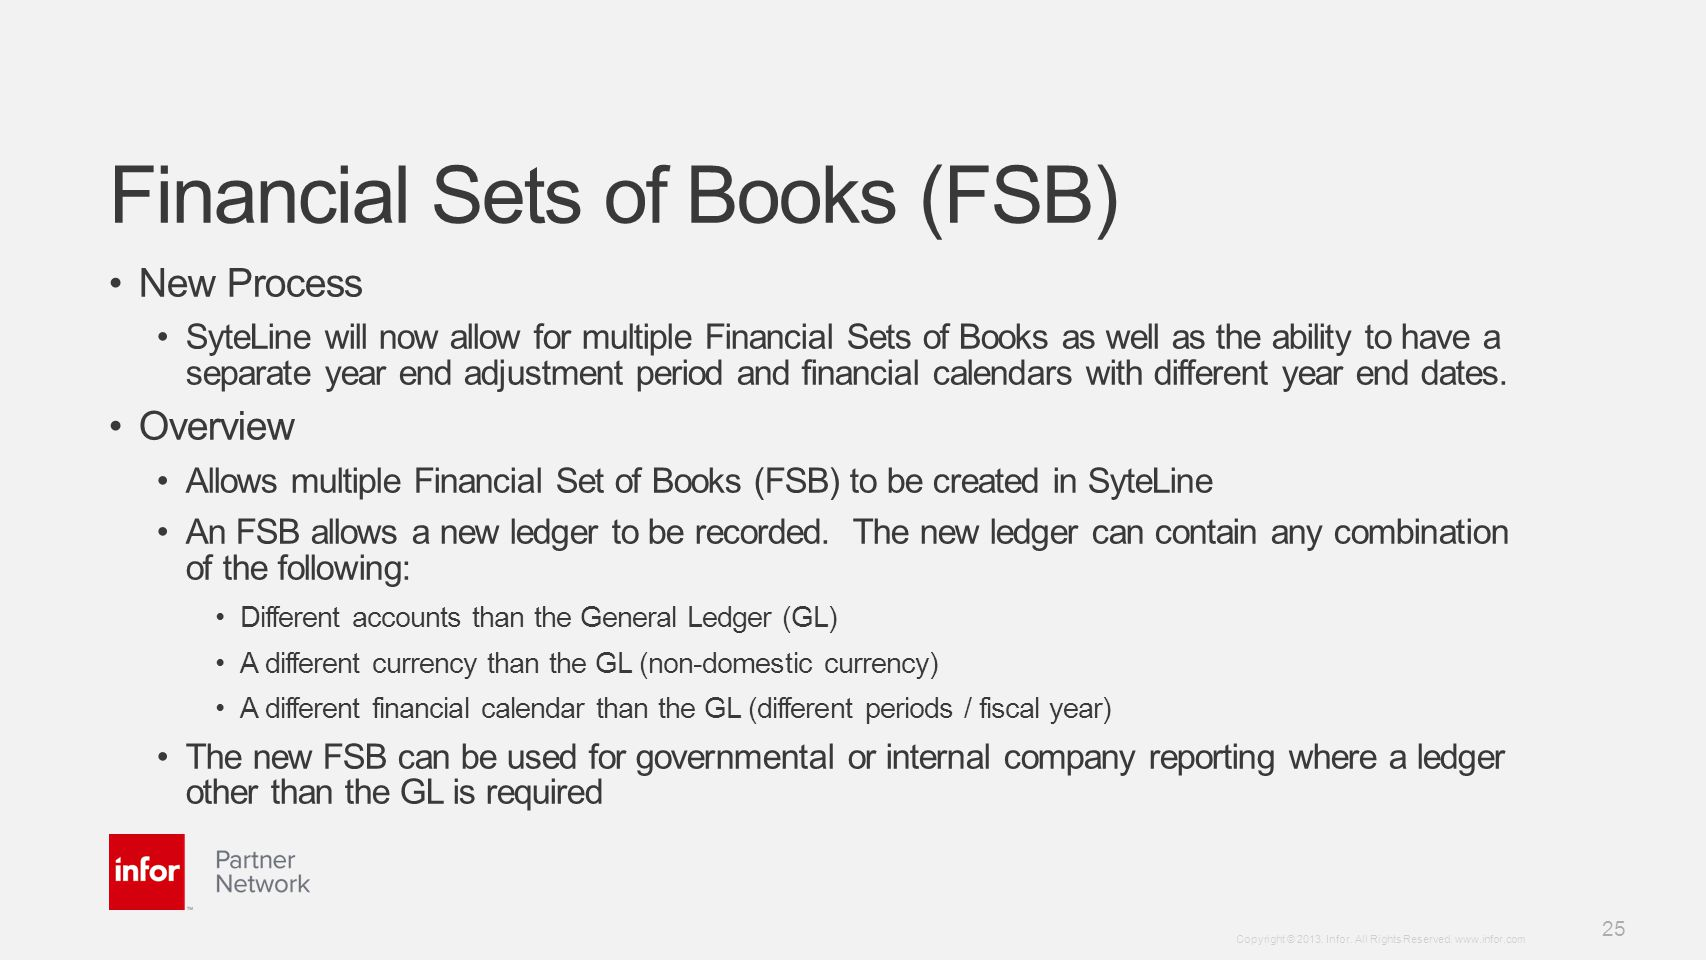 Financial Sets of Books (FSB)